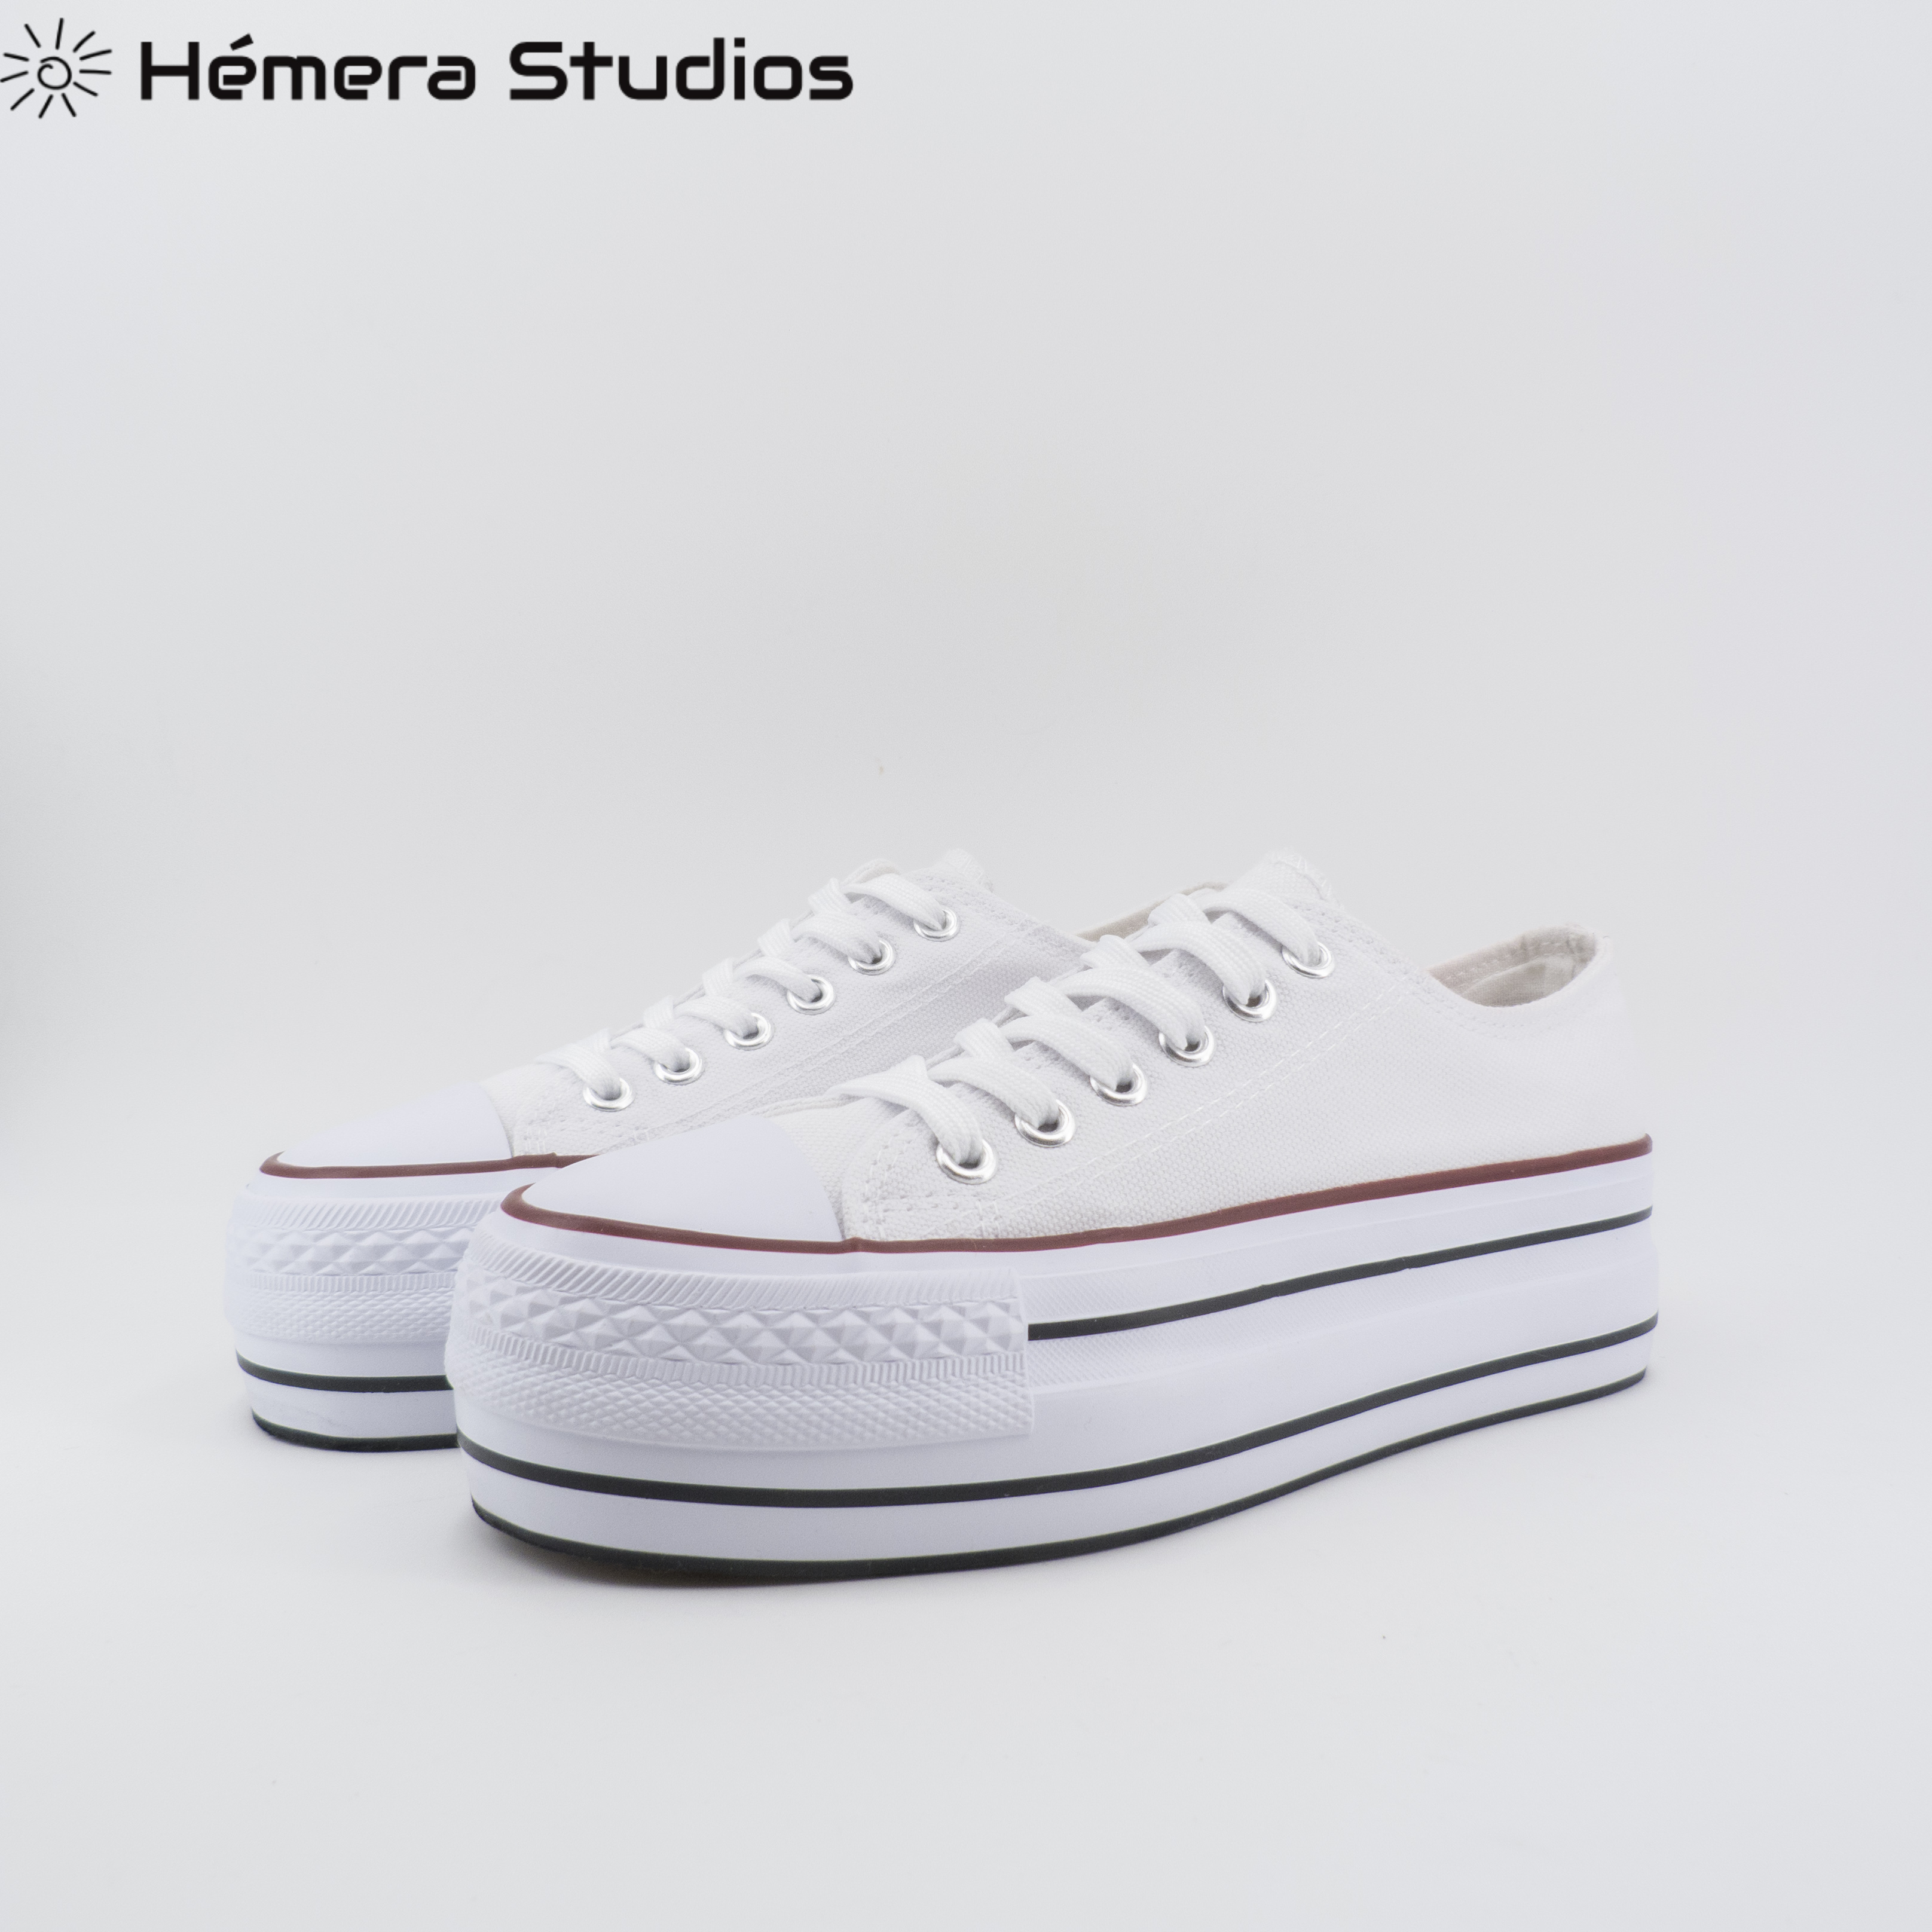 Canvas Sneakers For Women With Close's Lacing And Toecap's Rubber Gum Footwear Triple Sole Style Casual Nueva Collection Tracks